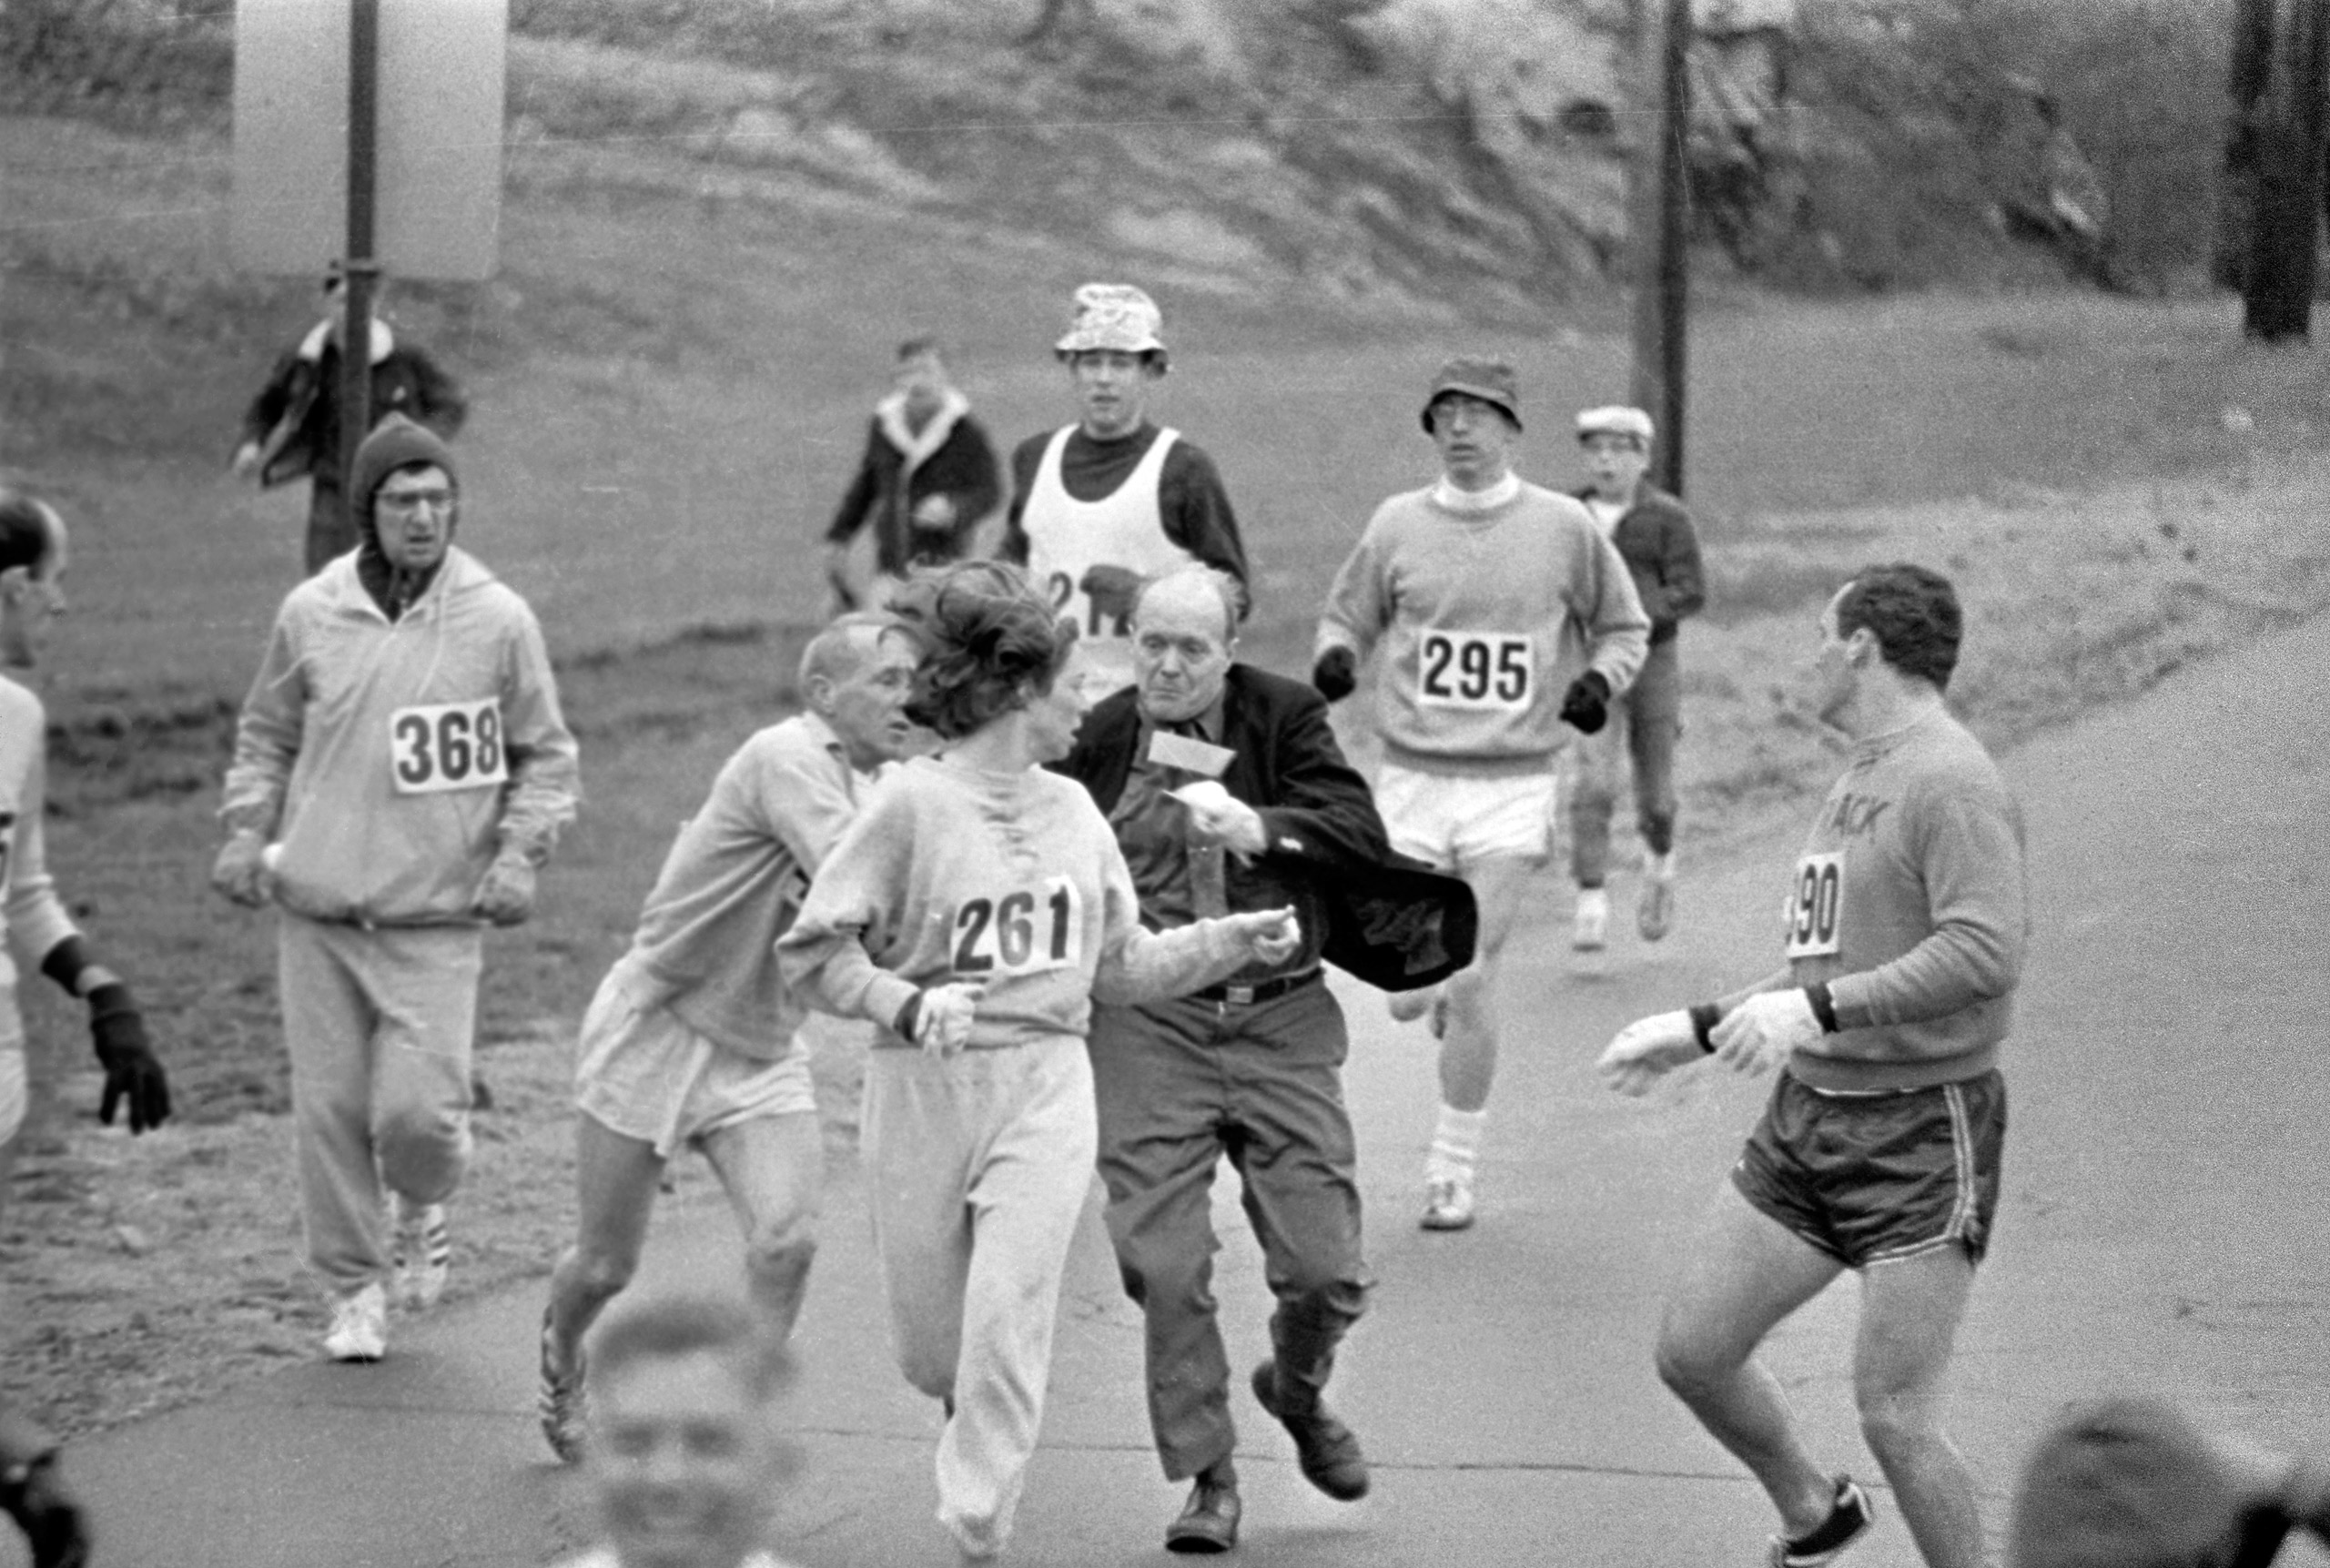 The rule that no women shall run in the Boston Athletic Association (BAA) Marathon is being put to a very real test in this photo. Trainer Jack Semple (in street clothes) enters the field of runners to try to pull Kathy Switzer (261) out of the race. Male runners move in to form protective curtain around the female track hopeful, until the protesting trainer is finally wedged out of the race, and Switzer is allowed to finish the marathon.